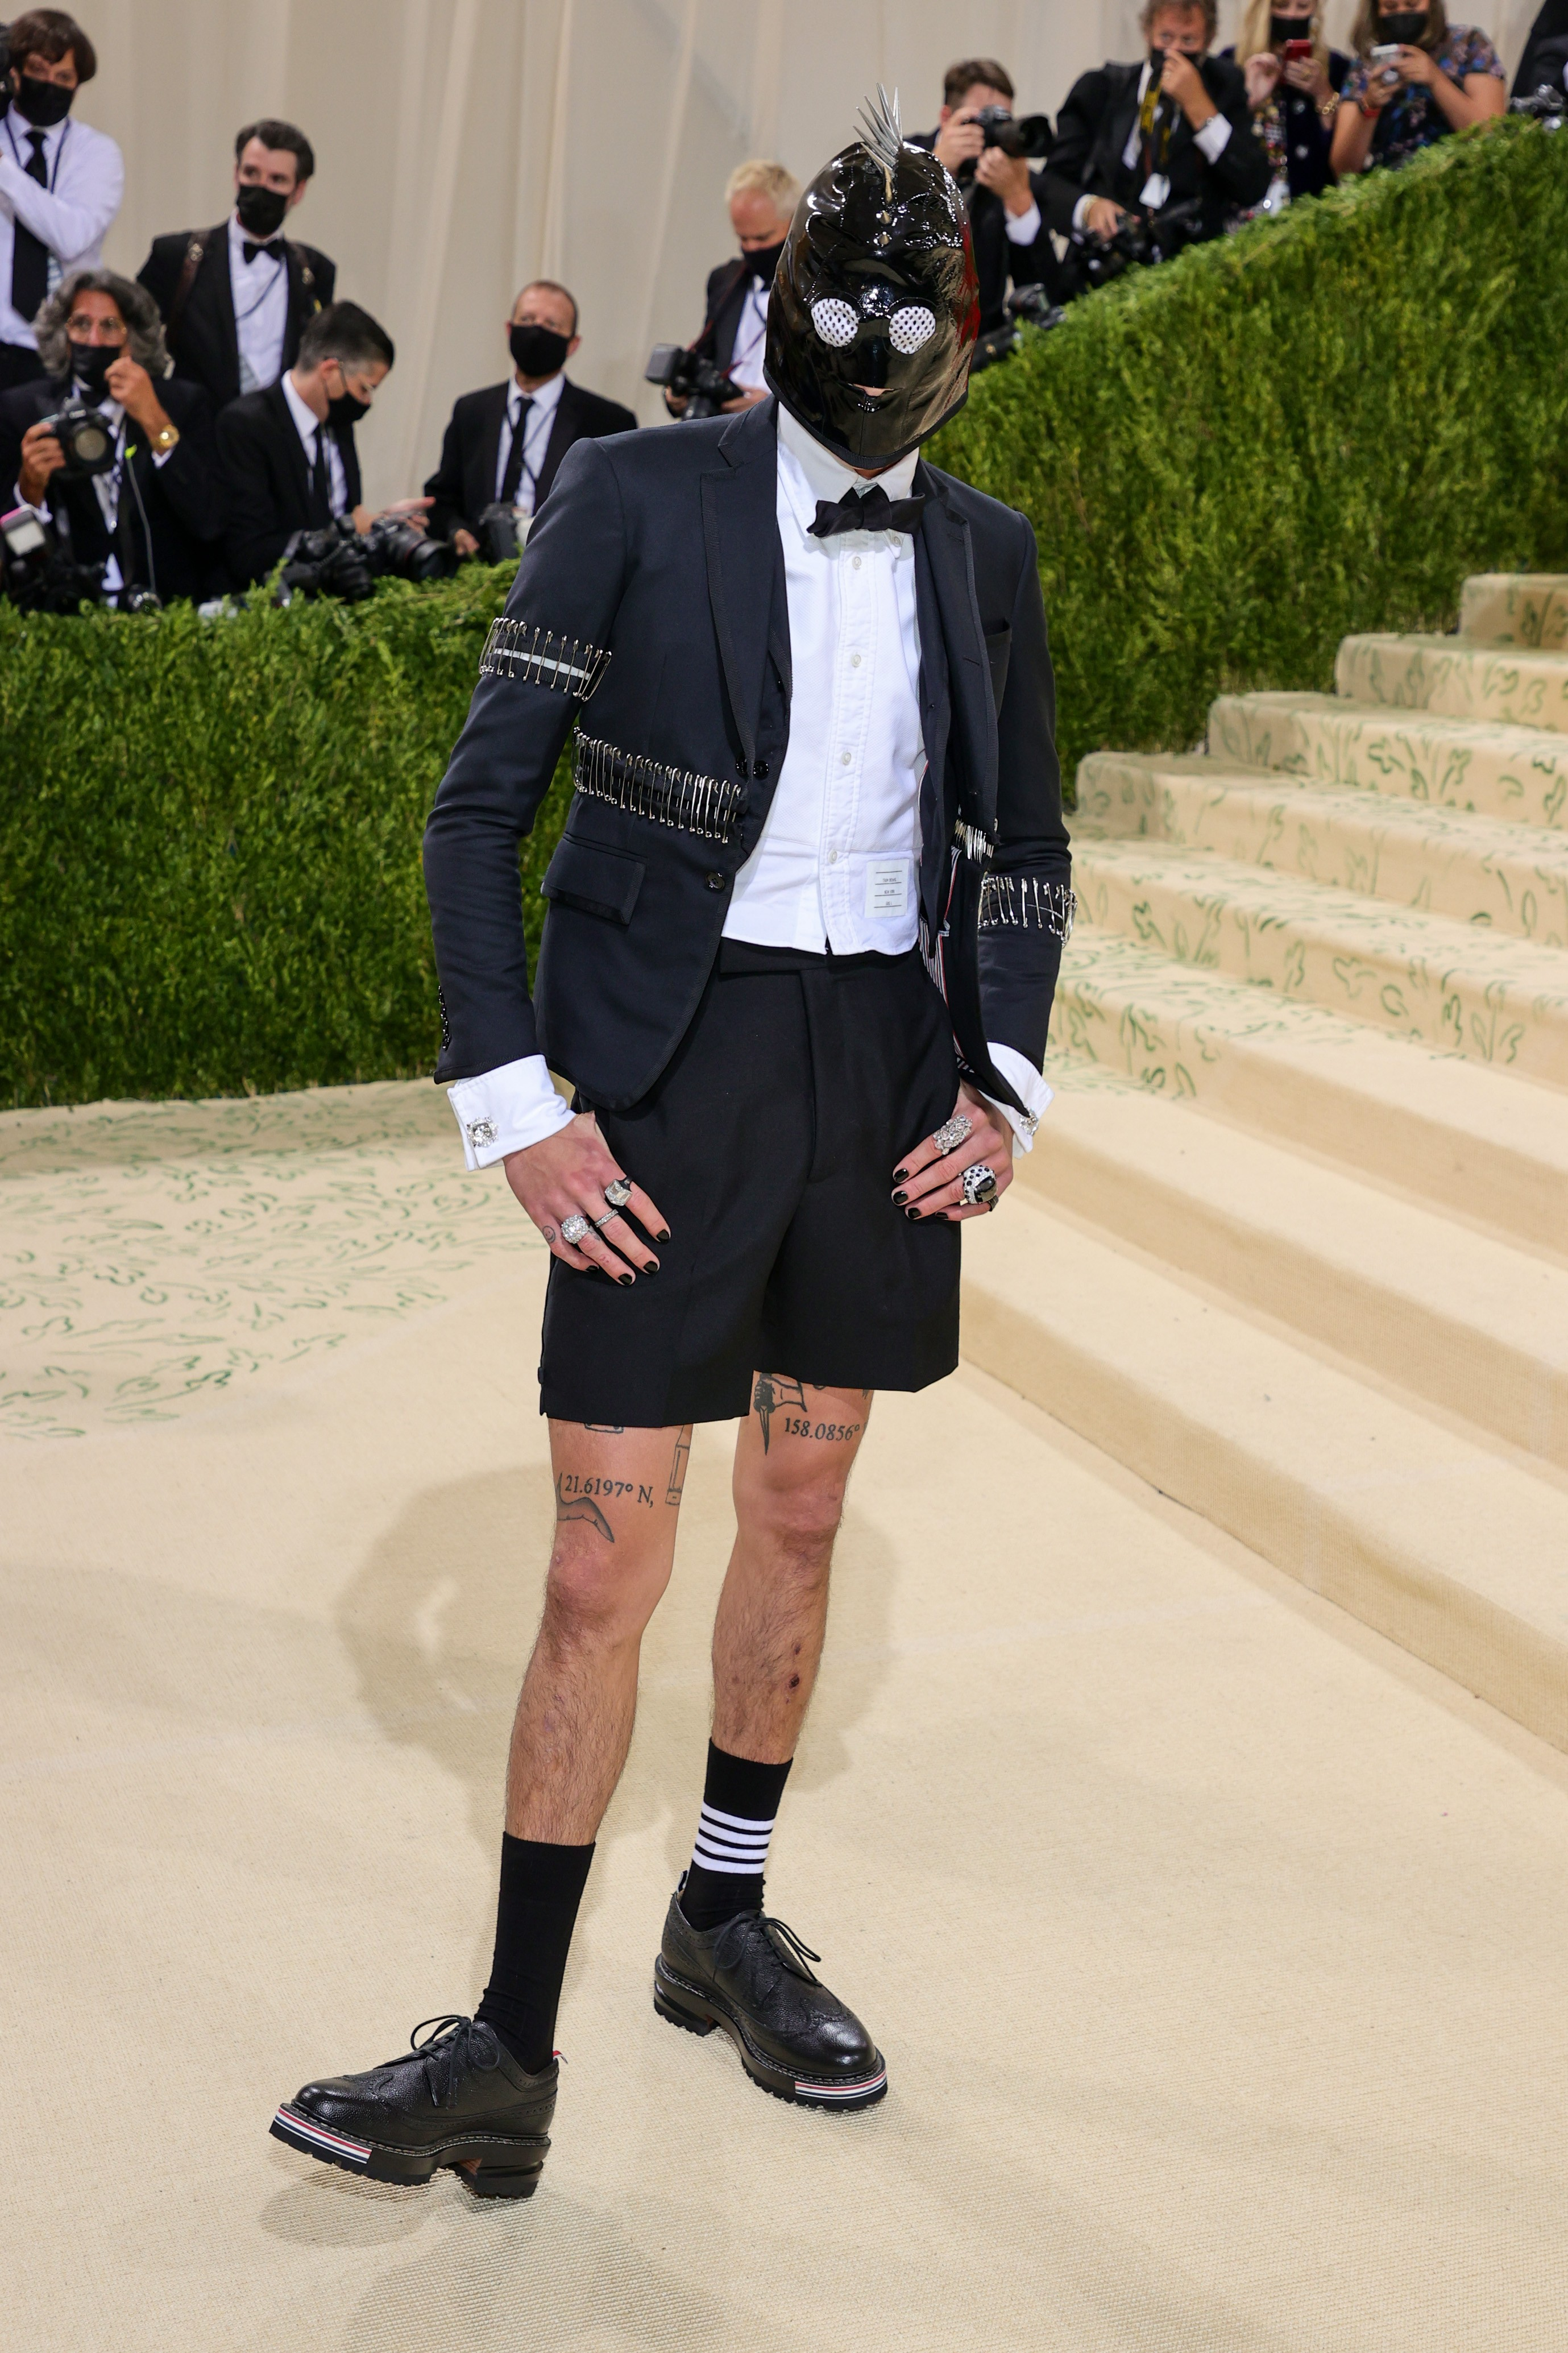 NEW YORK, NEW YORK - SEPTEMBER 13: Evan Mock attends The 2021 Met Gala Celebrating In America: A Lexicon Of Fashion at Metropolitan Museum of Art on September 13, 2021 in New York City. (Photo by Theo Wargo/Getty Images) (Foto: Getty Images)